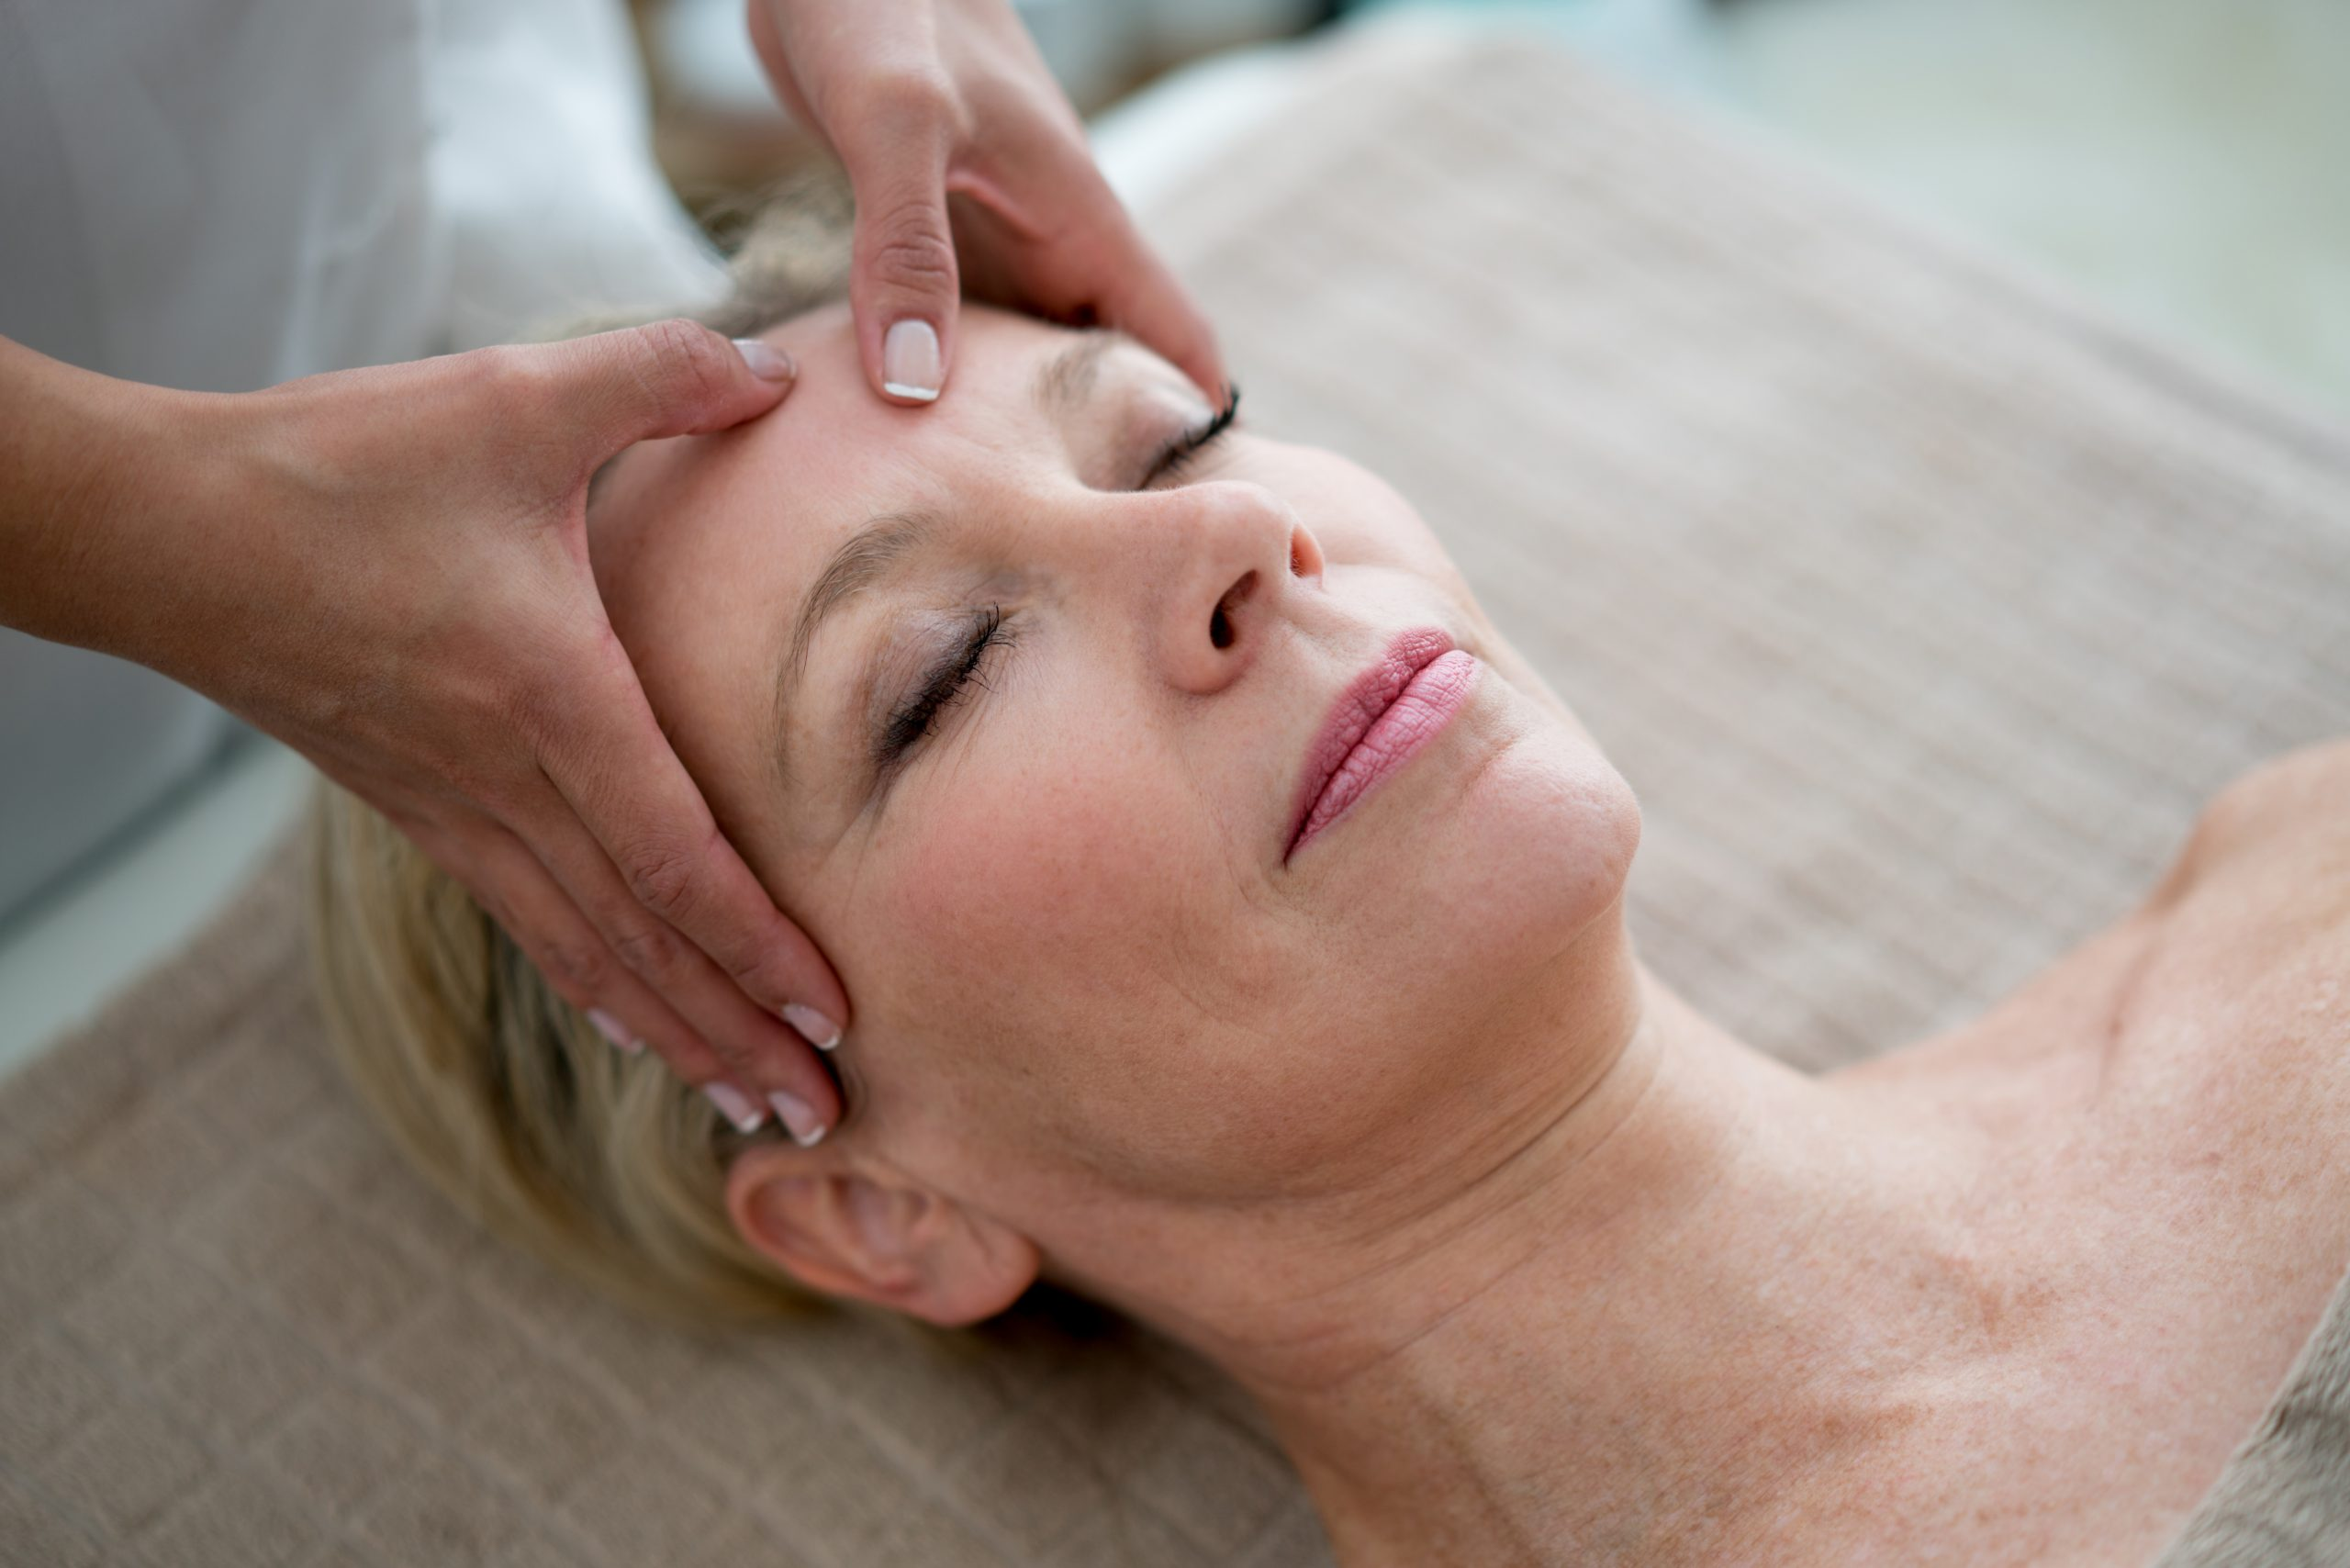 Portrait of an adult woman getting a face massage at the spa - beauty treatment concepts